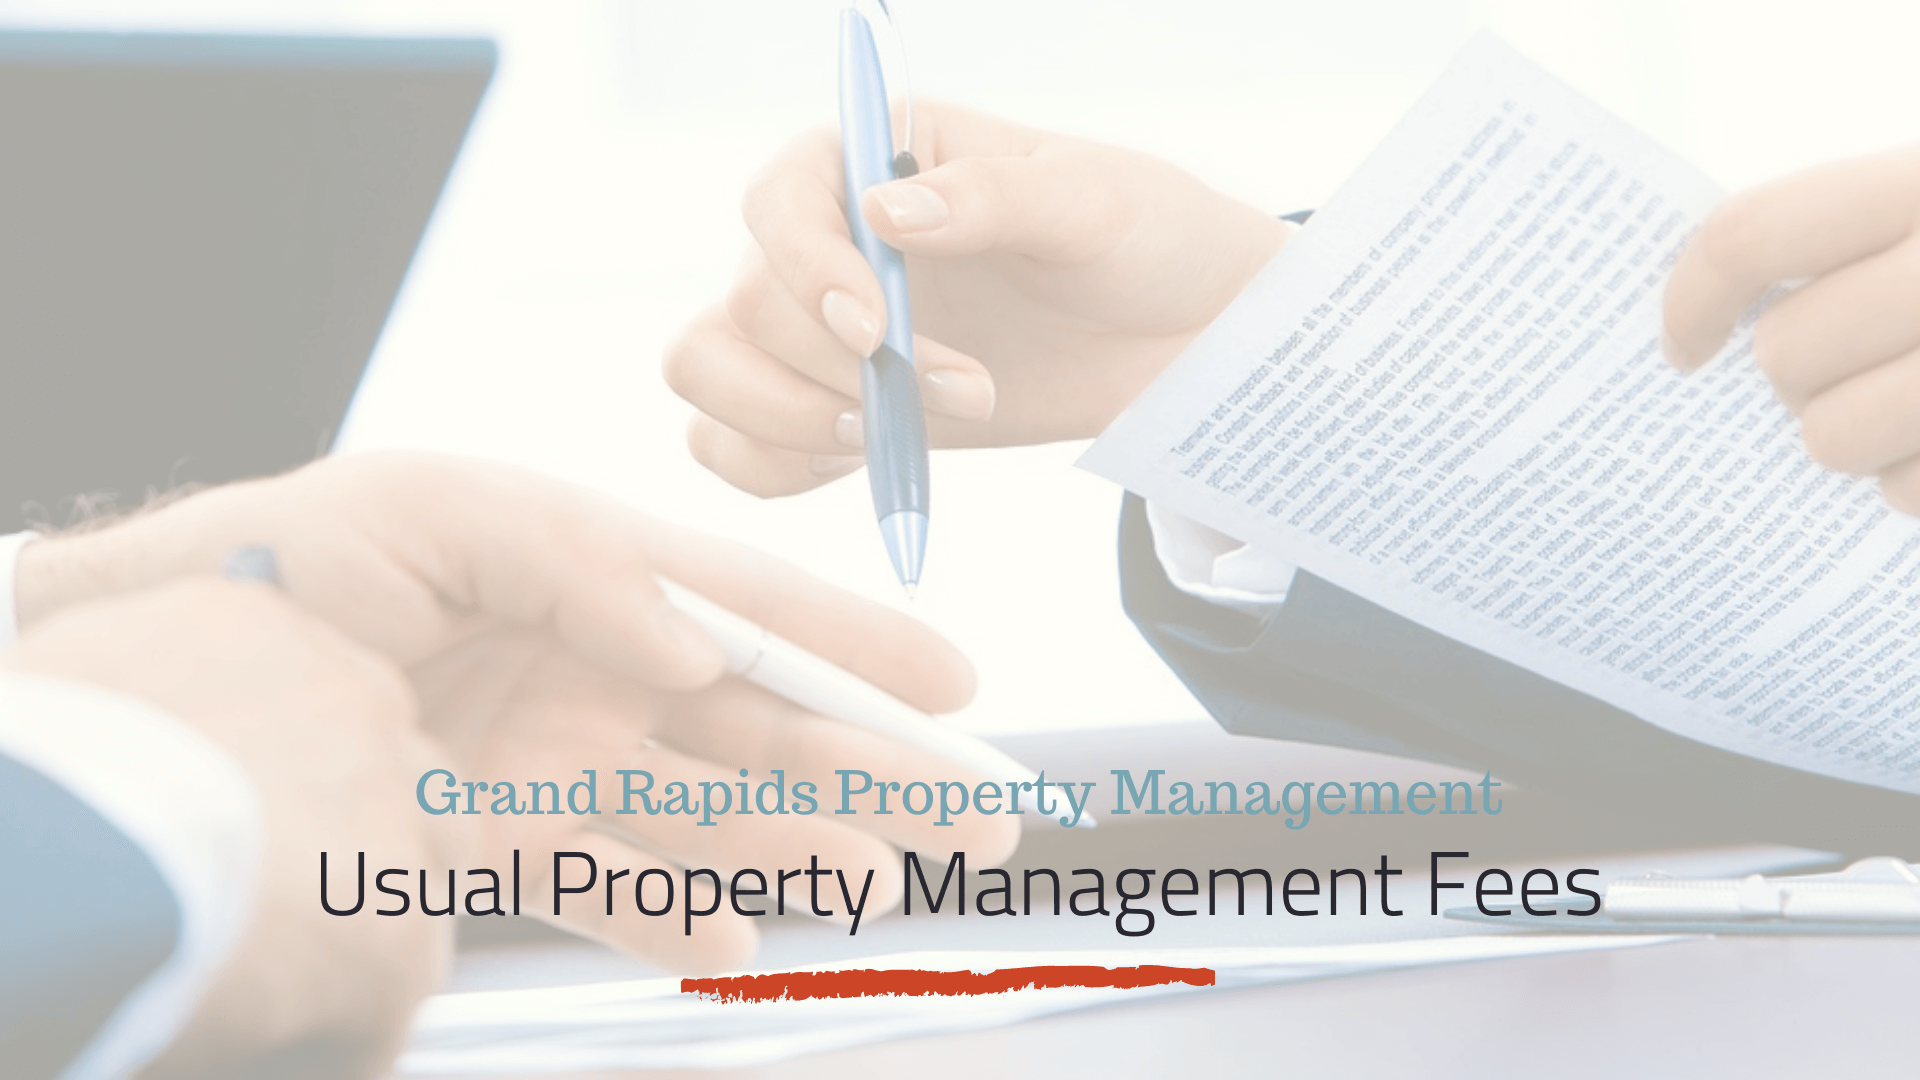 What Are Usual Property Management Fees in Grand Rapids